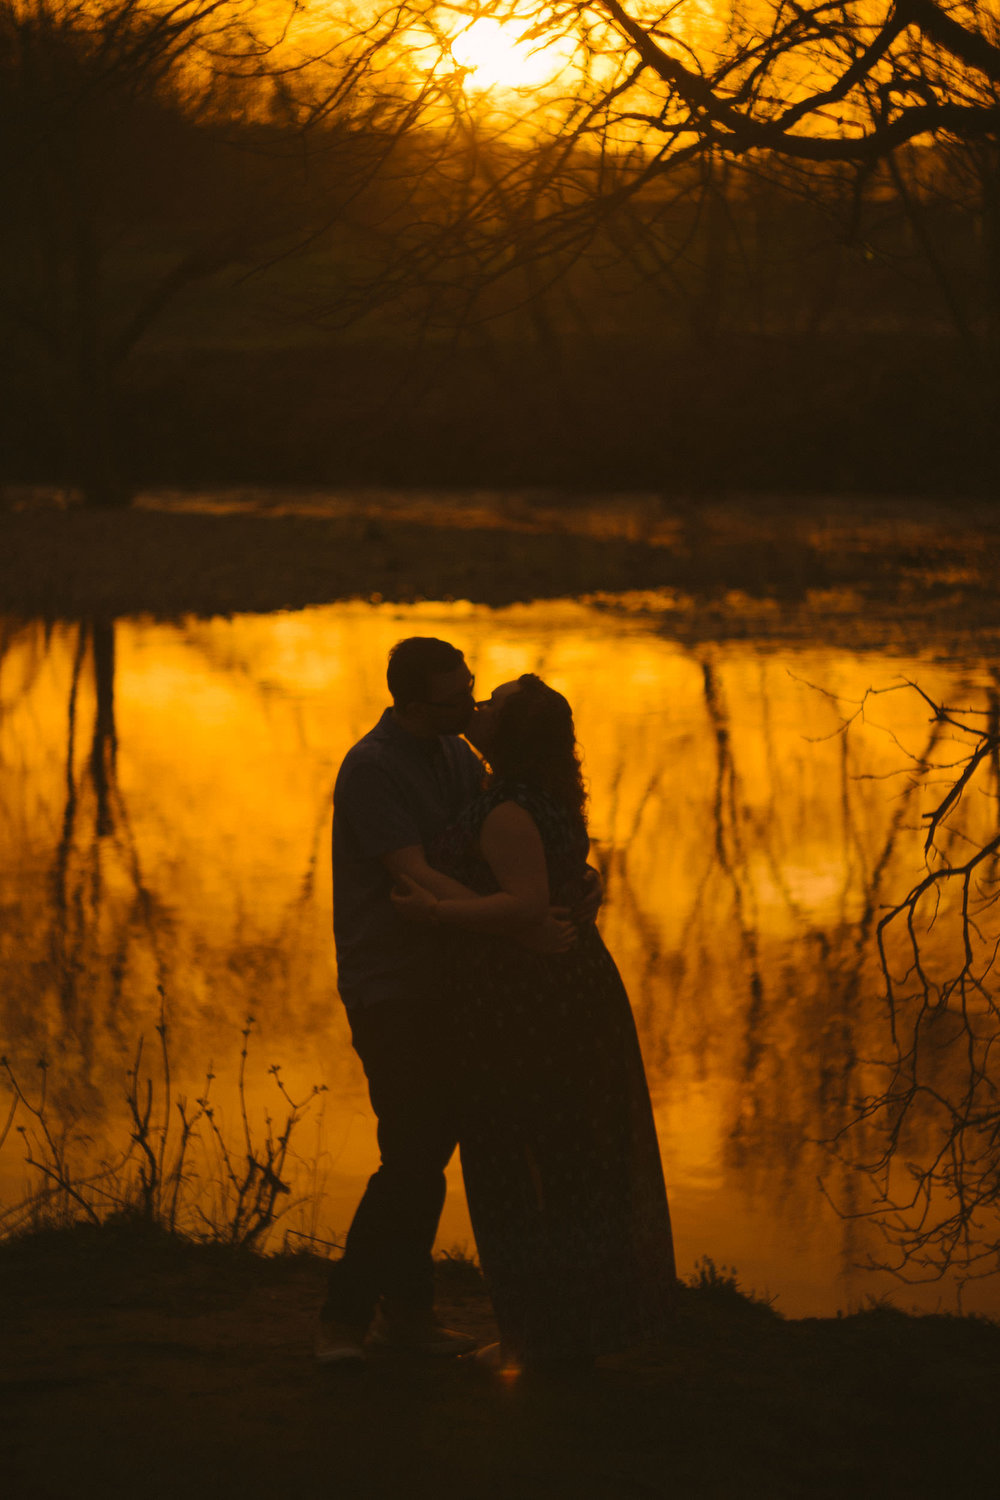 Silhouette of couple in golden light with river behind